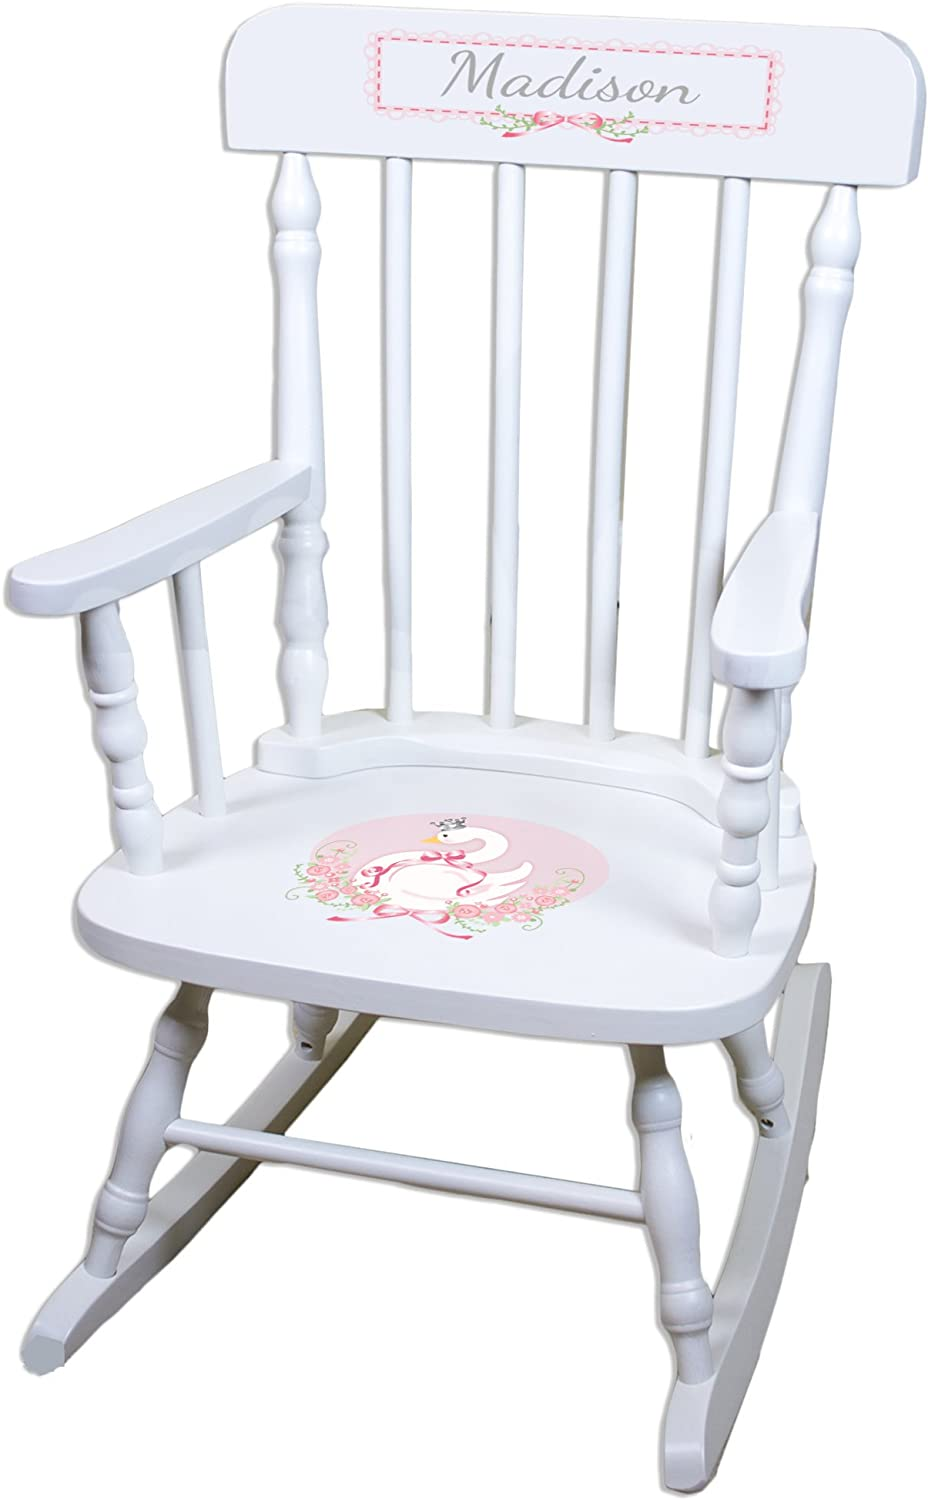 Personalized Swan White Limited Luxury goods price Childrens Chair Rocking